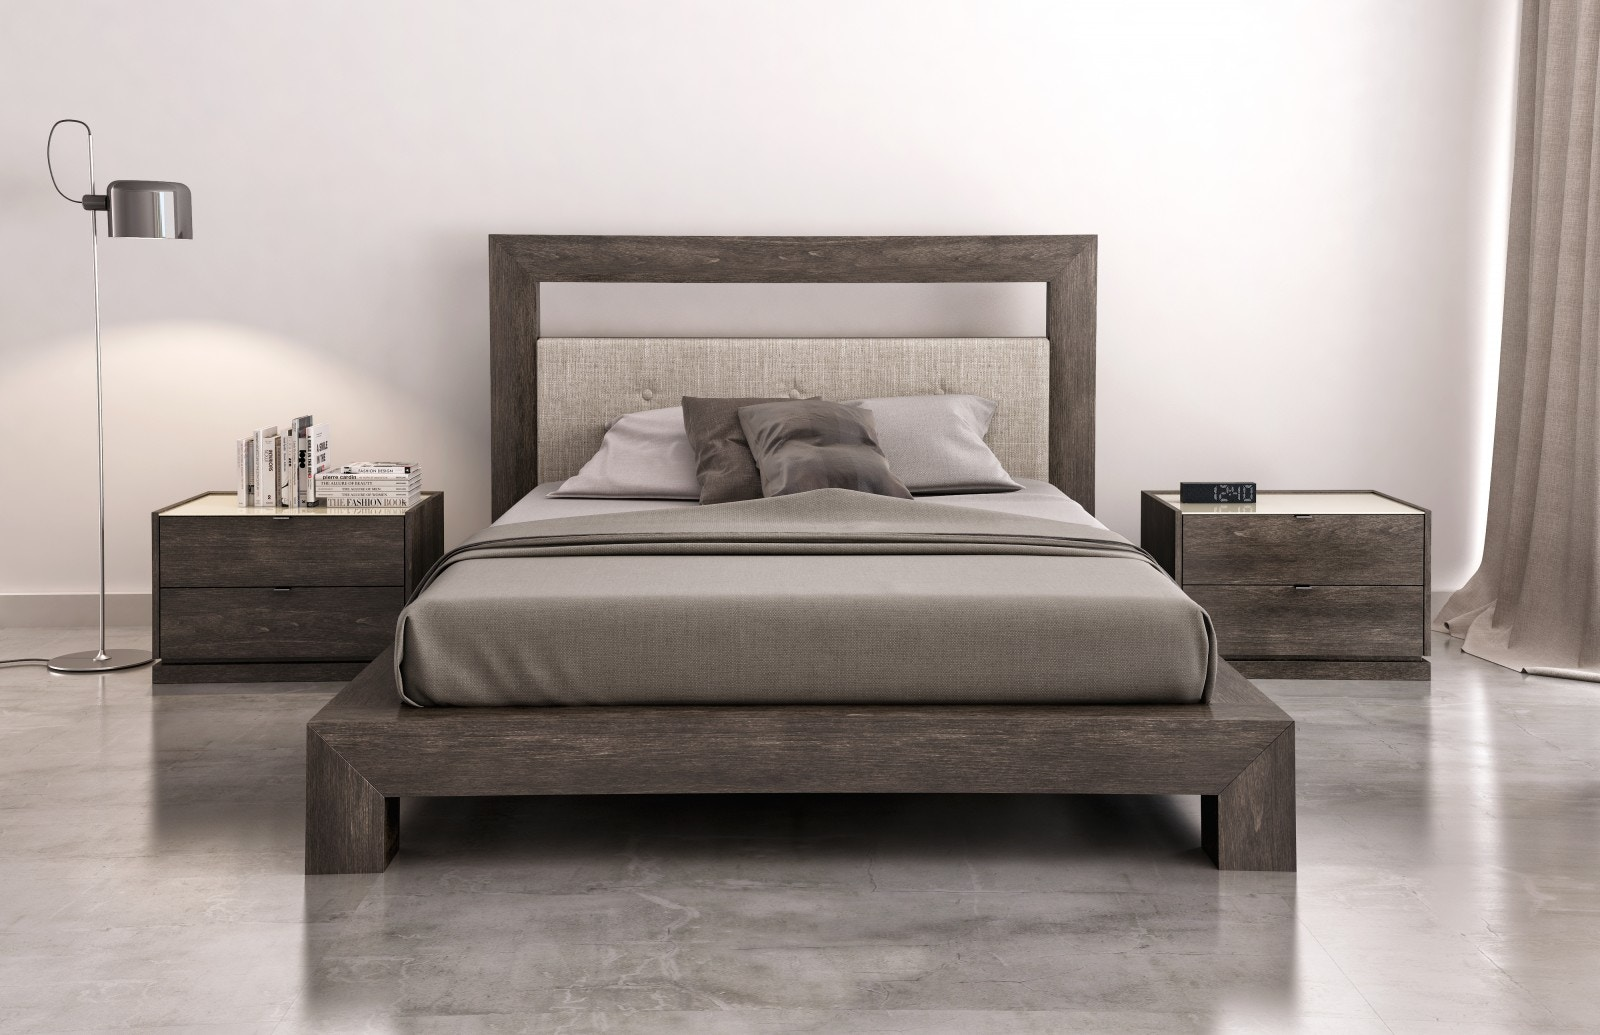 Zoom Bedroom CLO Bed by HUPP Furniture